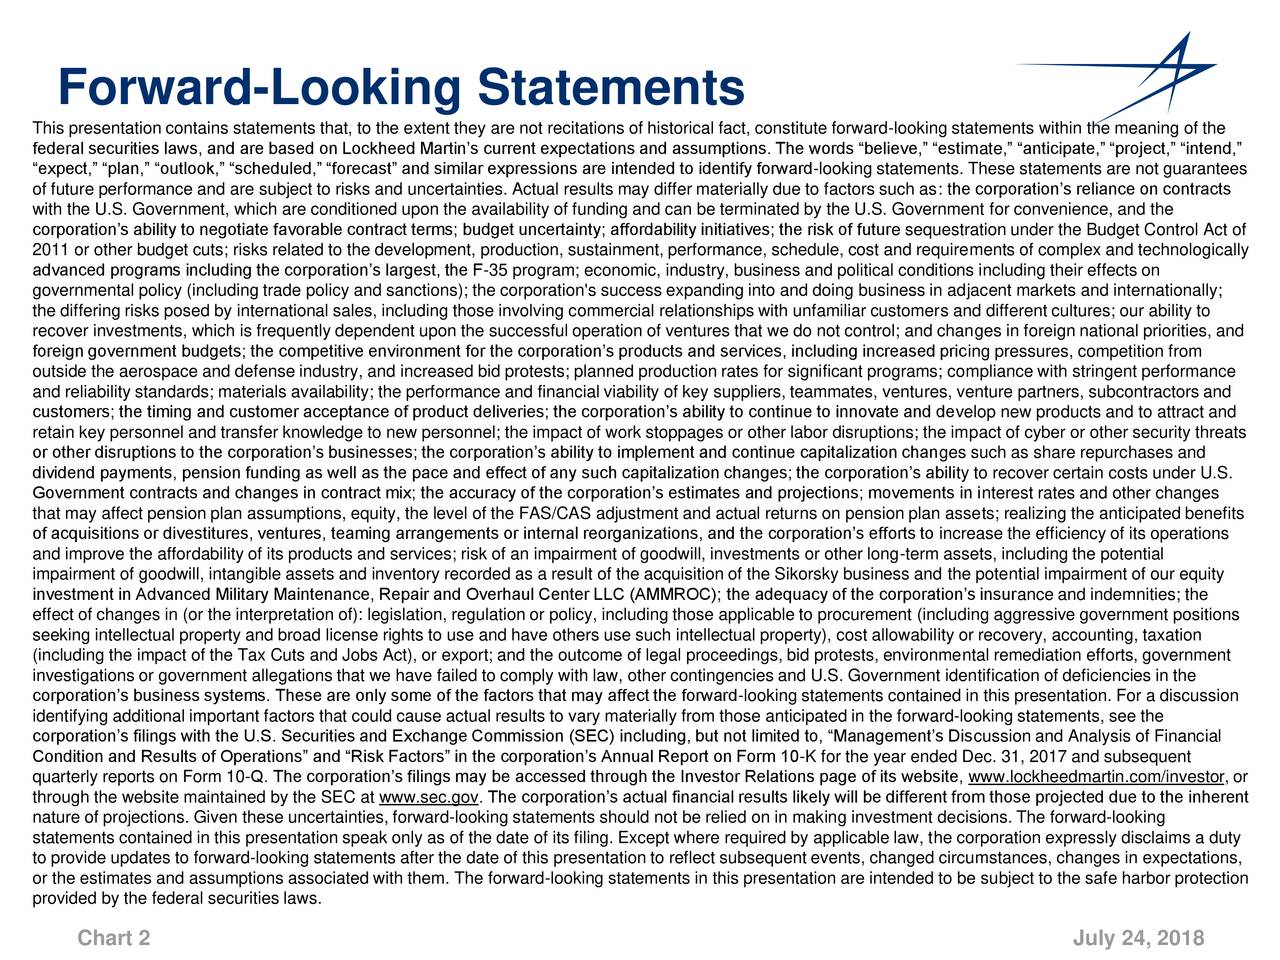 "This presentation contains statements that, to the extent they are not recitations of historical fact, constitute forward-looking statements within the meaning of the federal securities laws, and are based on Lockheed Martin's current expectations and assumptions. The words ""believe,"" ""estimate,"" ""anticipate,"" ""project,"" ""intend,"" ""expect,"" ""plan,"" ""outlook,"" ""scheduled,"" ""forecast"" and similar expressions are intended to identify forward-looking statements. These statements are not guarantees of future performance and are subject to risks and uncertainties. Actual results may differ materially due to factors such as: the corporation's reliance on contracts with the U.S. Government, which are conditioned upon the availability of funding and can be terminated by the U.S. Government for convenience, and the corporation's ability to negotiate favorable contract terms; budget uncertainty; affordability initiatives; the risk of future sequestration under the Budget Control Act of 2011 or other budget cuts; risks related to the development, production, sustainment, performance, schedule, cost and requirements of complex and technologically advanced programs including the corporation's largest, the F-35 program; economic, industry, business and political conditions including their effects on governmental policy (including trade policy and sanctions); the corporation's success expanding into and doing business in adjacent markets and internationally; the differing risks posed by international sales, including those involving commercial relationships with unfamiliar customers and different cultures; our ability to recover investments, which is frequently dependent upon the successful operation of ventures that we do not control; and changes in foreign national priorities, and foreign government budgets; the competitive environment for the corporation's products and services, including increased pricing pressures, competition from outside the aerospace and defense industry, and increased bid protests; planned production rates for significant programs; compliance with stringent performance and reliability standards; materials availability; the performance and financial viability of key suppliers, teammates, ventures, venture partners, subcontractors and customers; the timing and customer acceptance of product deliveries; the corporation's ability to continue to innovate and develop new products and to attract and retain key personnel and transfer knowledge to new personnel; the impact of work stoppages or other labor disruptions; the impact of cyber or other security threats or other disruptions to the corporation's businesses; the corporation's ability to implement and continue capitalization changes such as share repurchases and dividend payments, pension funding as well as the pace and effect of any such capitalization changes; the corporation's ability to recover certain costs under U.S. Government contracts and changes in contract mix; the accuracy of the corporation's estimates and projections; movements in interest rates and other changes that may affect pension plan assumptions, equity, the level of the FAS/CAS adjustment and actual returns on pension plan assets; realizing the anticipated benefits of acquisitions or divestitures, ventures, teaming arrangements or internal reorganizations, and the corporation's efforts to increase the efficiency of its operations and improve the affordability of its products and services; risk of an impairment of goodwill, investments or other long-term assets, including the potential impairment of goodwill, intangible assets and inventory recorded as a result of the acquisition of the Sikorsky business and the potential impairment of our equity investment in Advanced Military Maintenance, Repair and Overhaul Center LLC (AMMROC); the adequacy of the corporation's insurance and indemnities; the effect of changes in (or the interpretation of): legislation, regulation or policy, including those applicable to procurement (including aggressive government positions seeking intellectual property and broad license rights to use and have others use such intellectual property), cost allowability or recovery, accounting, taxation (including the impact of the Tax Cuts and Jobs Act), or export; and the outcome of legal proceedings, bid protests, environmental remediation efforts, government investigations or government allegations that we have failed to comply with law, other contingencies and U.S. Government identification of deficiencies in the corporation's business systems. These are only some of the factors that may affect the forward-looking statements contained in this presentation. For a discussion identifying additional important factors that could cause actual results to vary materially from those anticipated in the forward-looking statements, see the corporation's filings with the U.S. Securities and Exchange Commission (SEC) including, but not limited to, ""Management's Discussion and Analysis of Financial Condition and Results of Operations"" and ""Risk Factors"" in the corporation's Annual Report on Form 10-K for the year ended Dec. 31, 2017 and subsequent quarterly reports on Form 10-Q. The corporation's filings may be accessed through the Investor Relations page of its website, www.lockheedmartin.com/investor, or through the website maintained by the SEC at www.sec.gov. The corporation's actual financial results likely will be different from those projected due to the inherent nature of projections. Given these uncertainties, forward-looking statements should not be relied on in making investment decisions. The forward-looking statements contained in this presentation speak only as of the date of its filing. Except where required by applicable law, the corporation expressly disclaims a duty to provide updates to forward-looking statements after the date of this presentation to reflect subsequent events, changed circumstances, changes in expectations, or the estimates and assumptions associated with them. The forward-looking statements in this presentation are intended to be subject to the safe harbor protection provided by the federal securities laws. Chart 2 July 24, 2018"